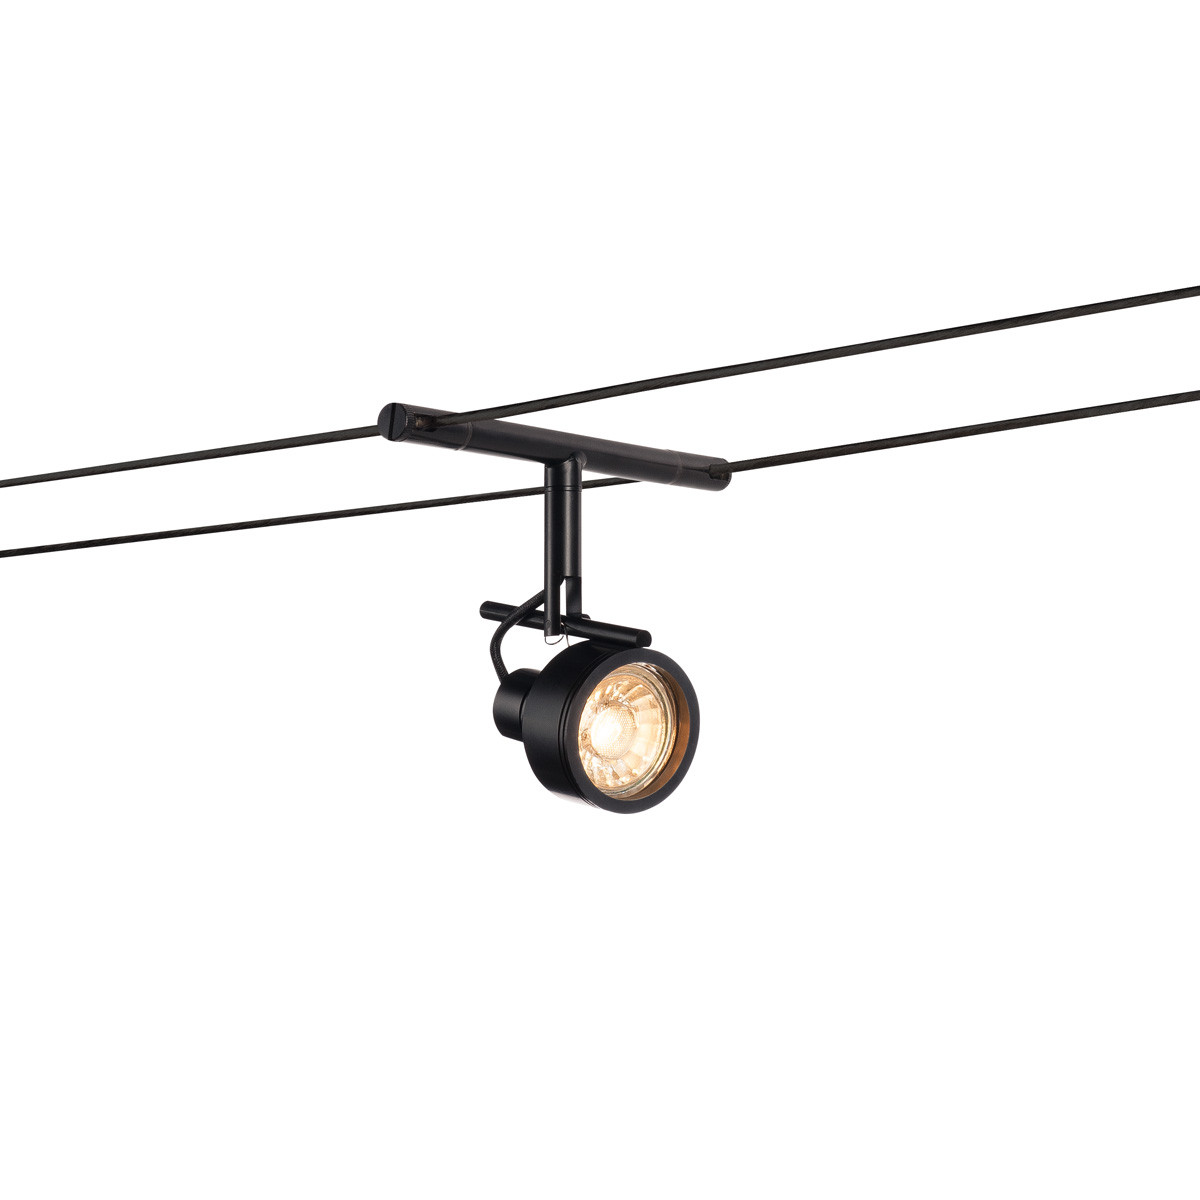 Black Wire Track Lighting: Modern Lighting Solutions